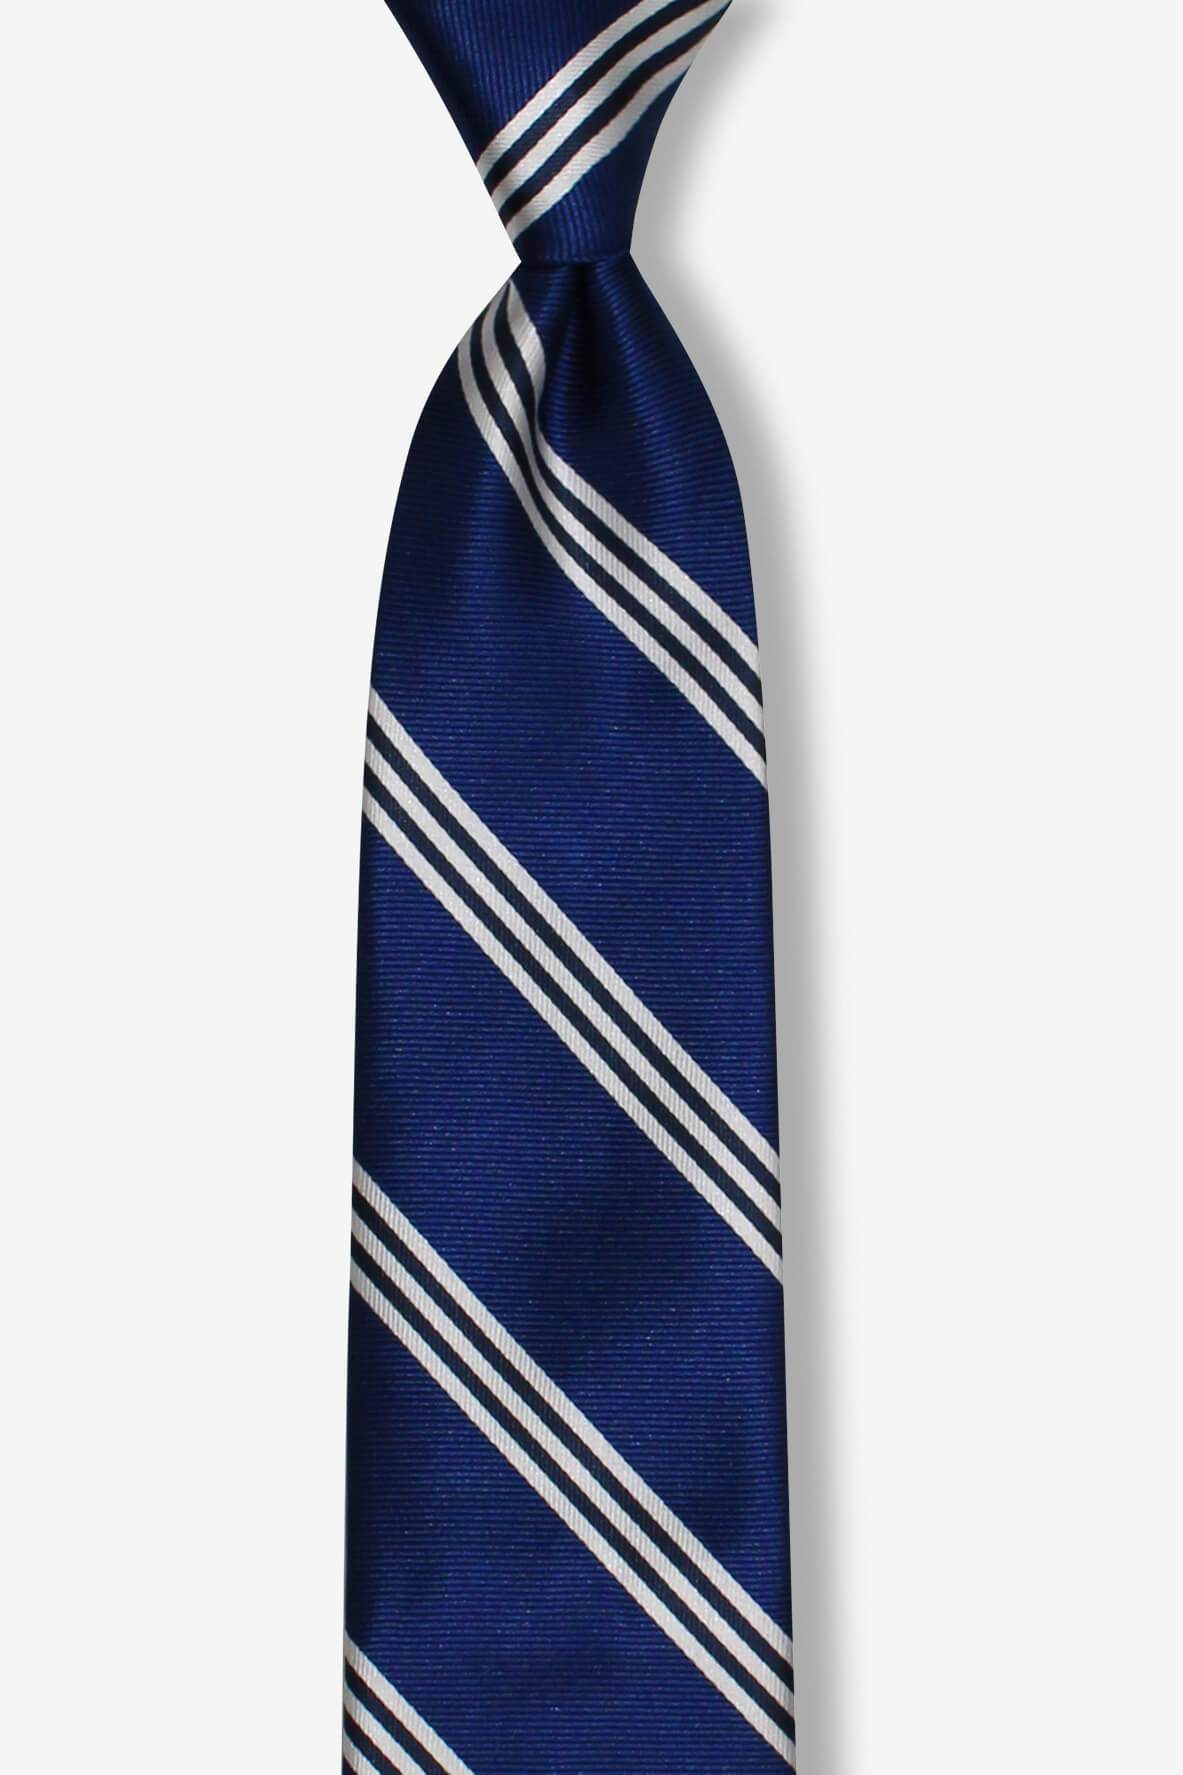 Blue Three Silver Striped Skinny Pre-tied Tie, Tie, GoTie